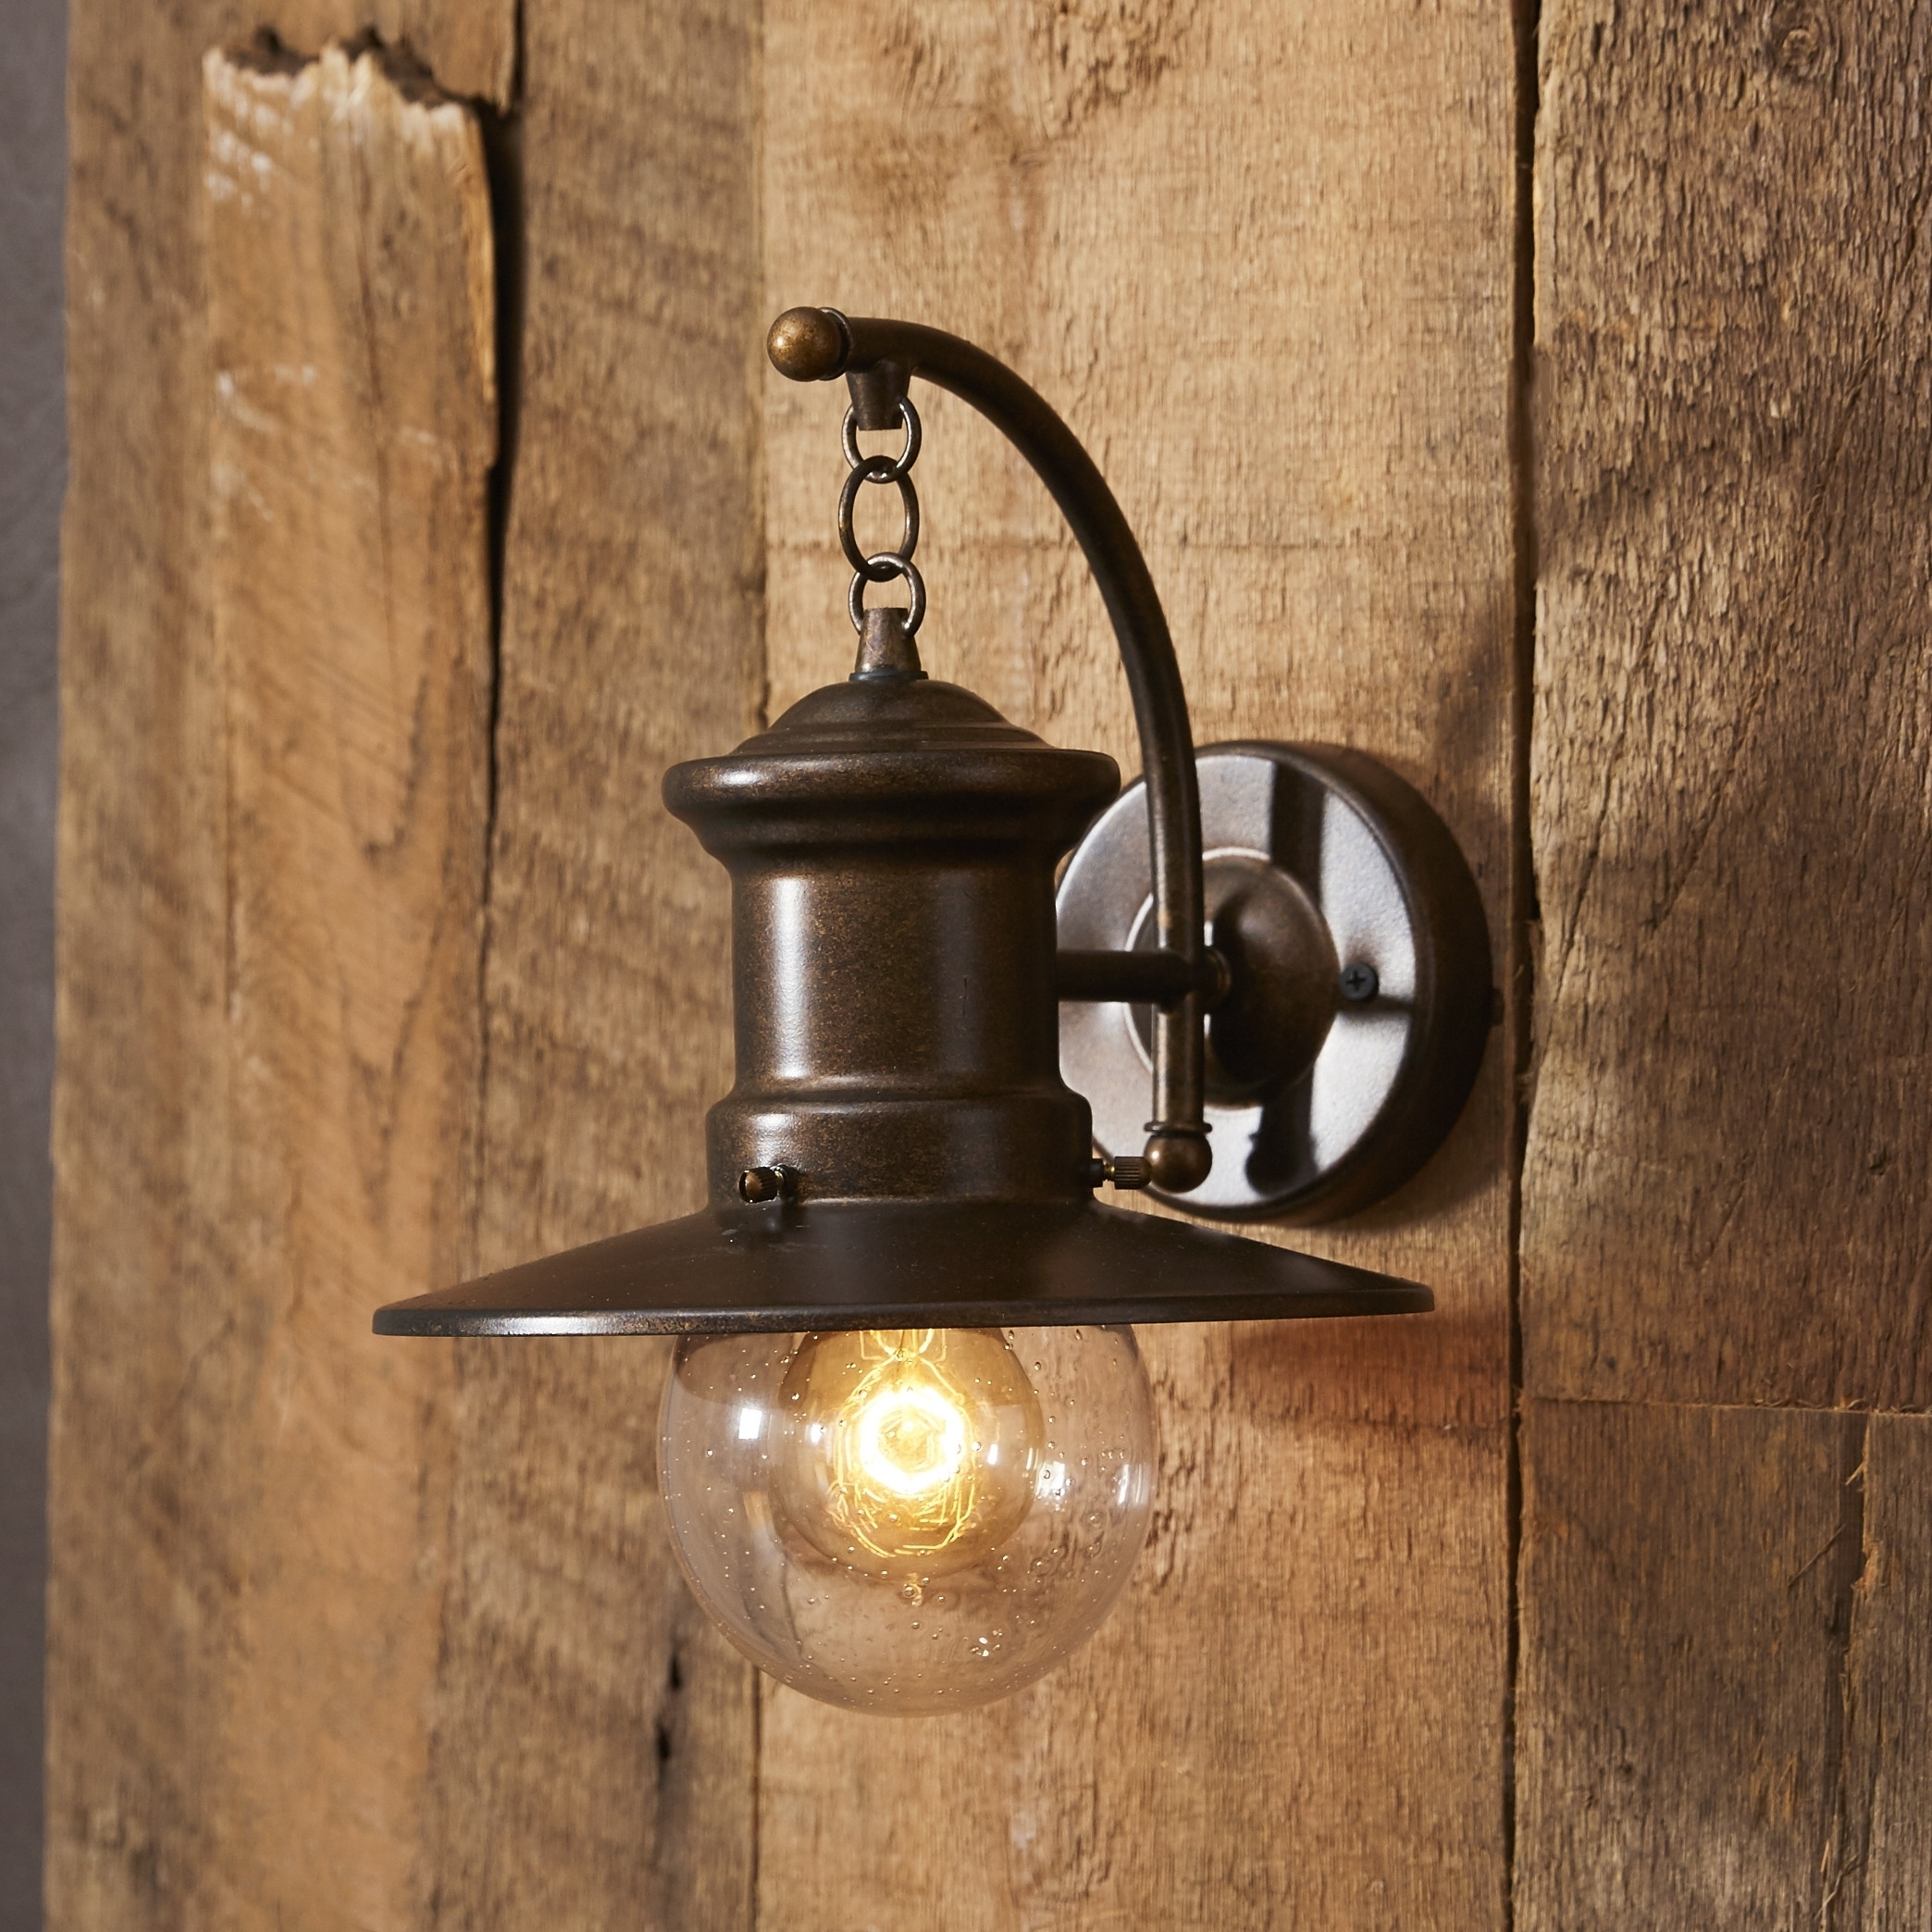 Glamorous Barn Light Sconce 2017 Design Outdoor Barn Lights For For Well Known Outdoor Hanging Barn Lights (Gallery 15 of 20)